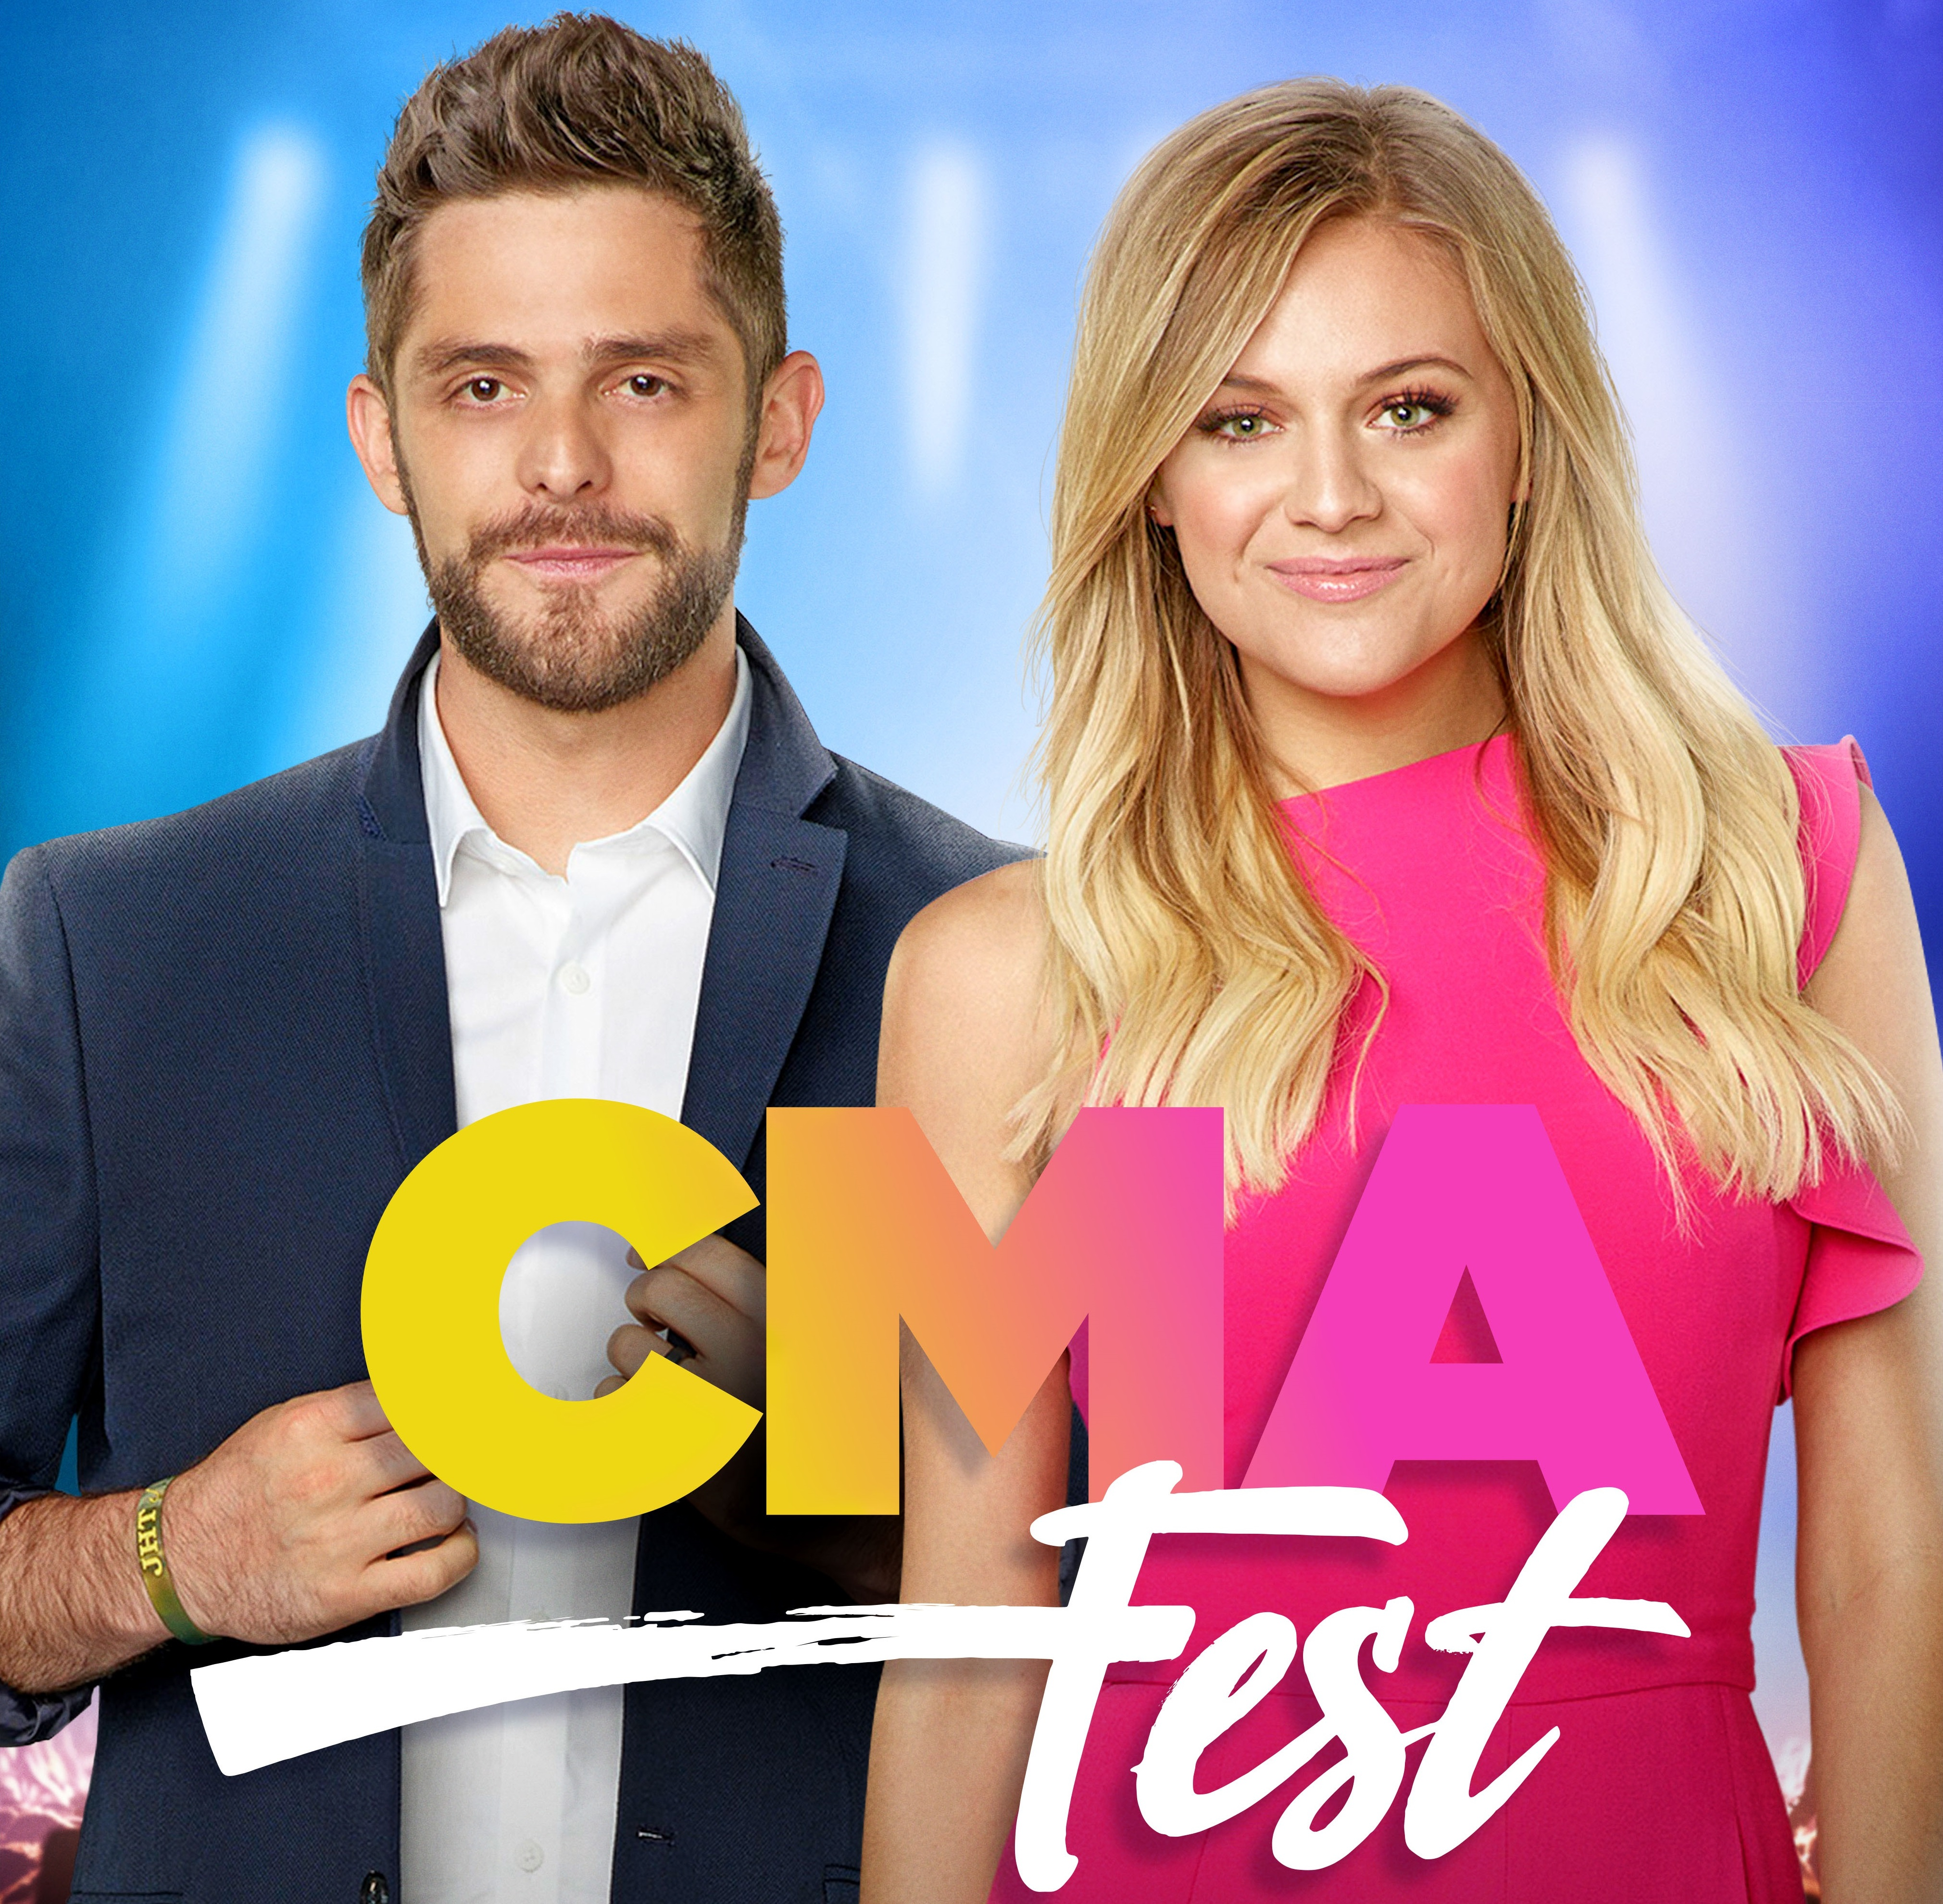 Cma Fest Broadcast To Air In August Undergoes Name Change Sounds